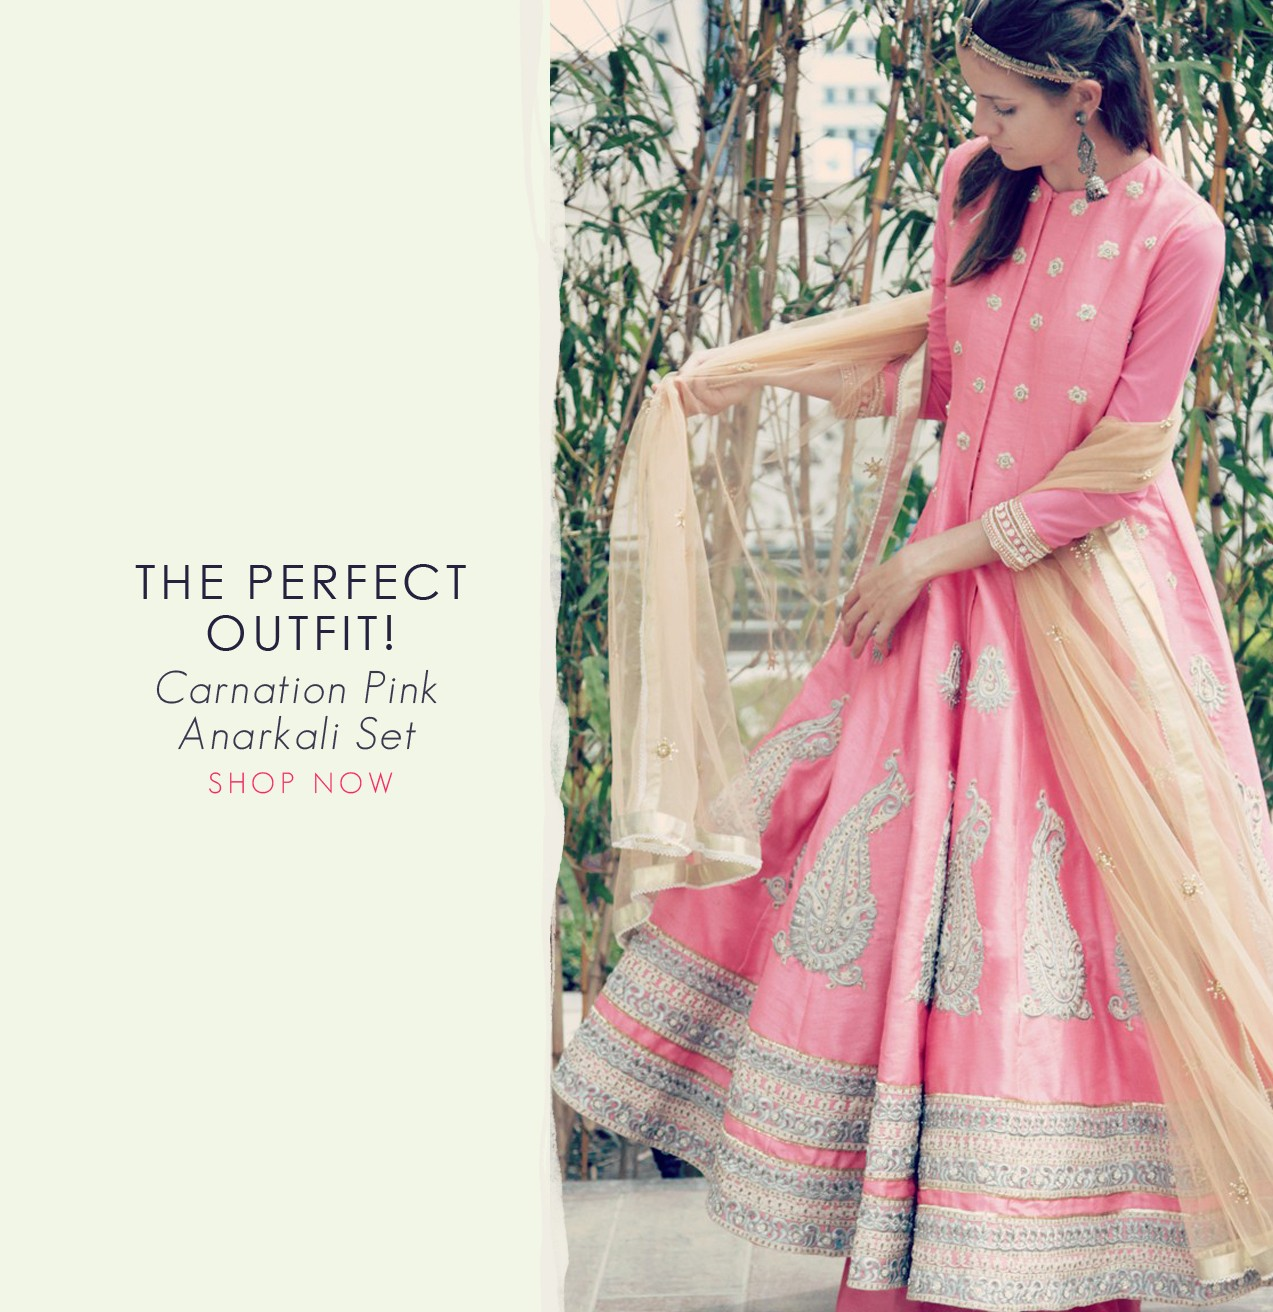 Pink-pearl-outfit-aharin